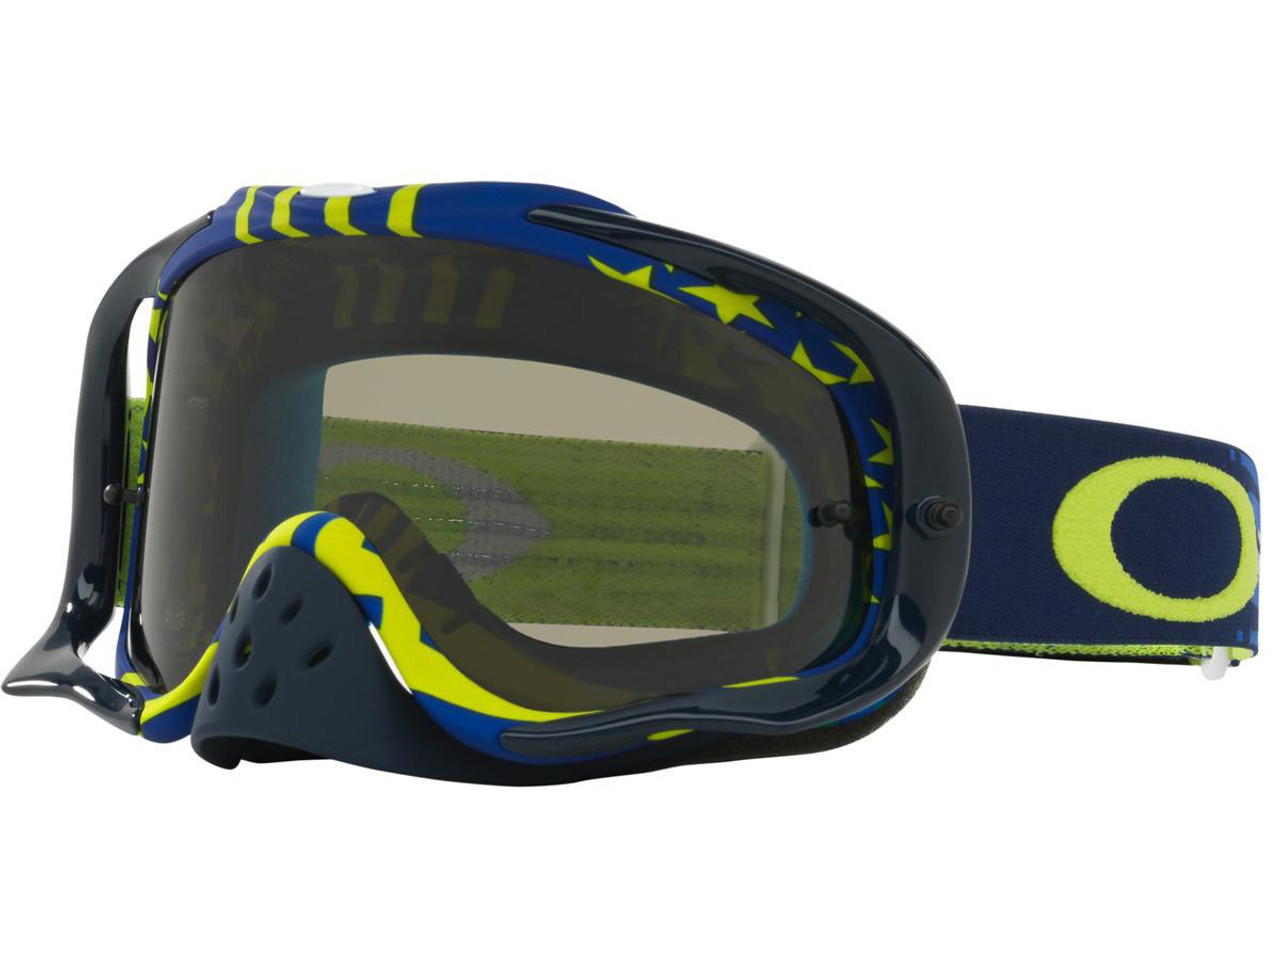 ce8cd1d95a Oakley Crowbar ANSI Z87.1 Flight Series Goggle - Hero Outdoors